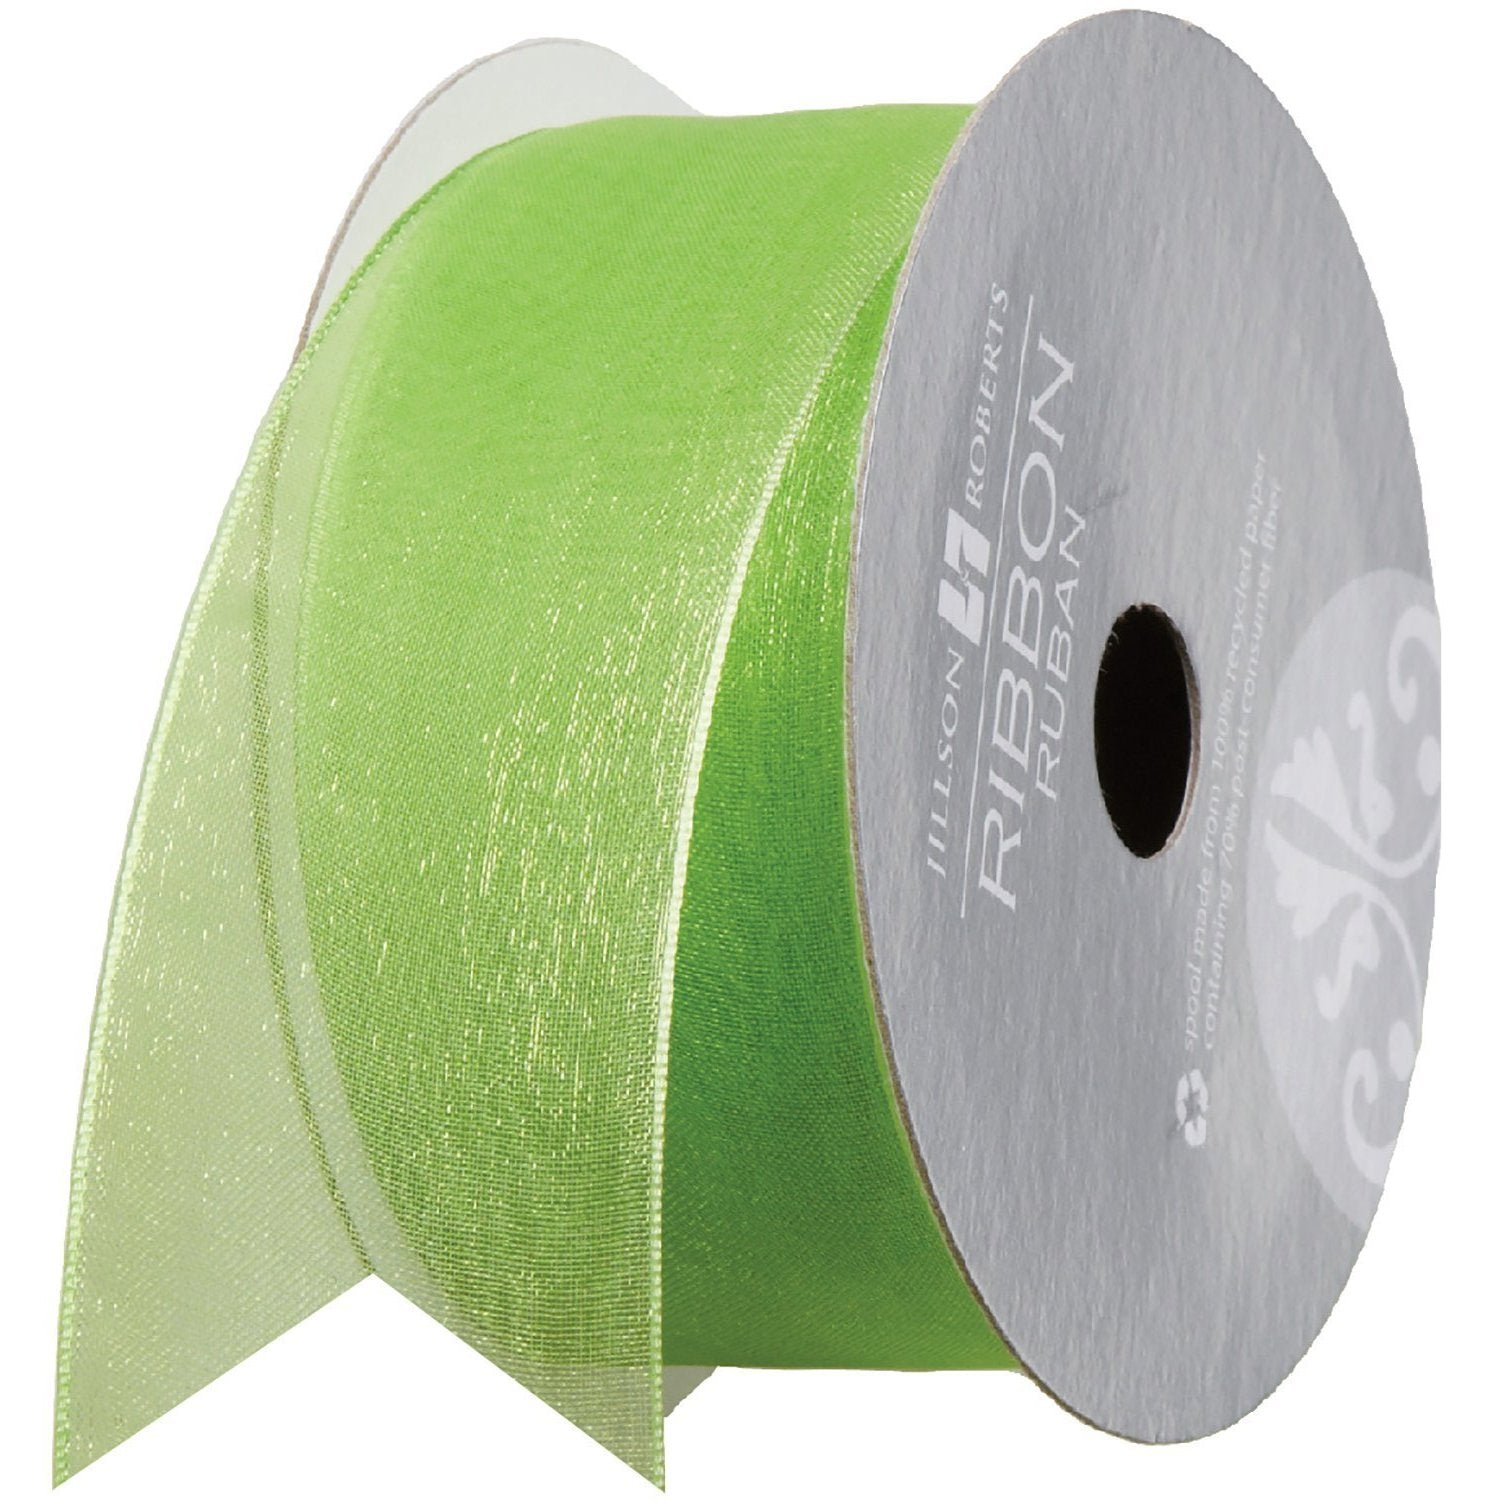 "Jillson & Roberts - Ribbon - 1 1/2"" - Sheer - Lime Green"